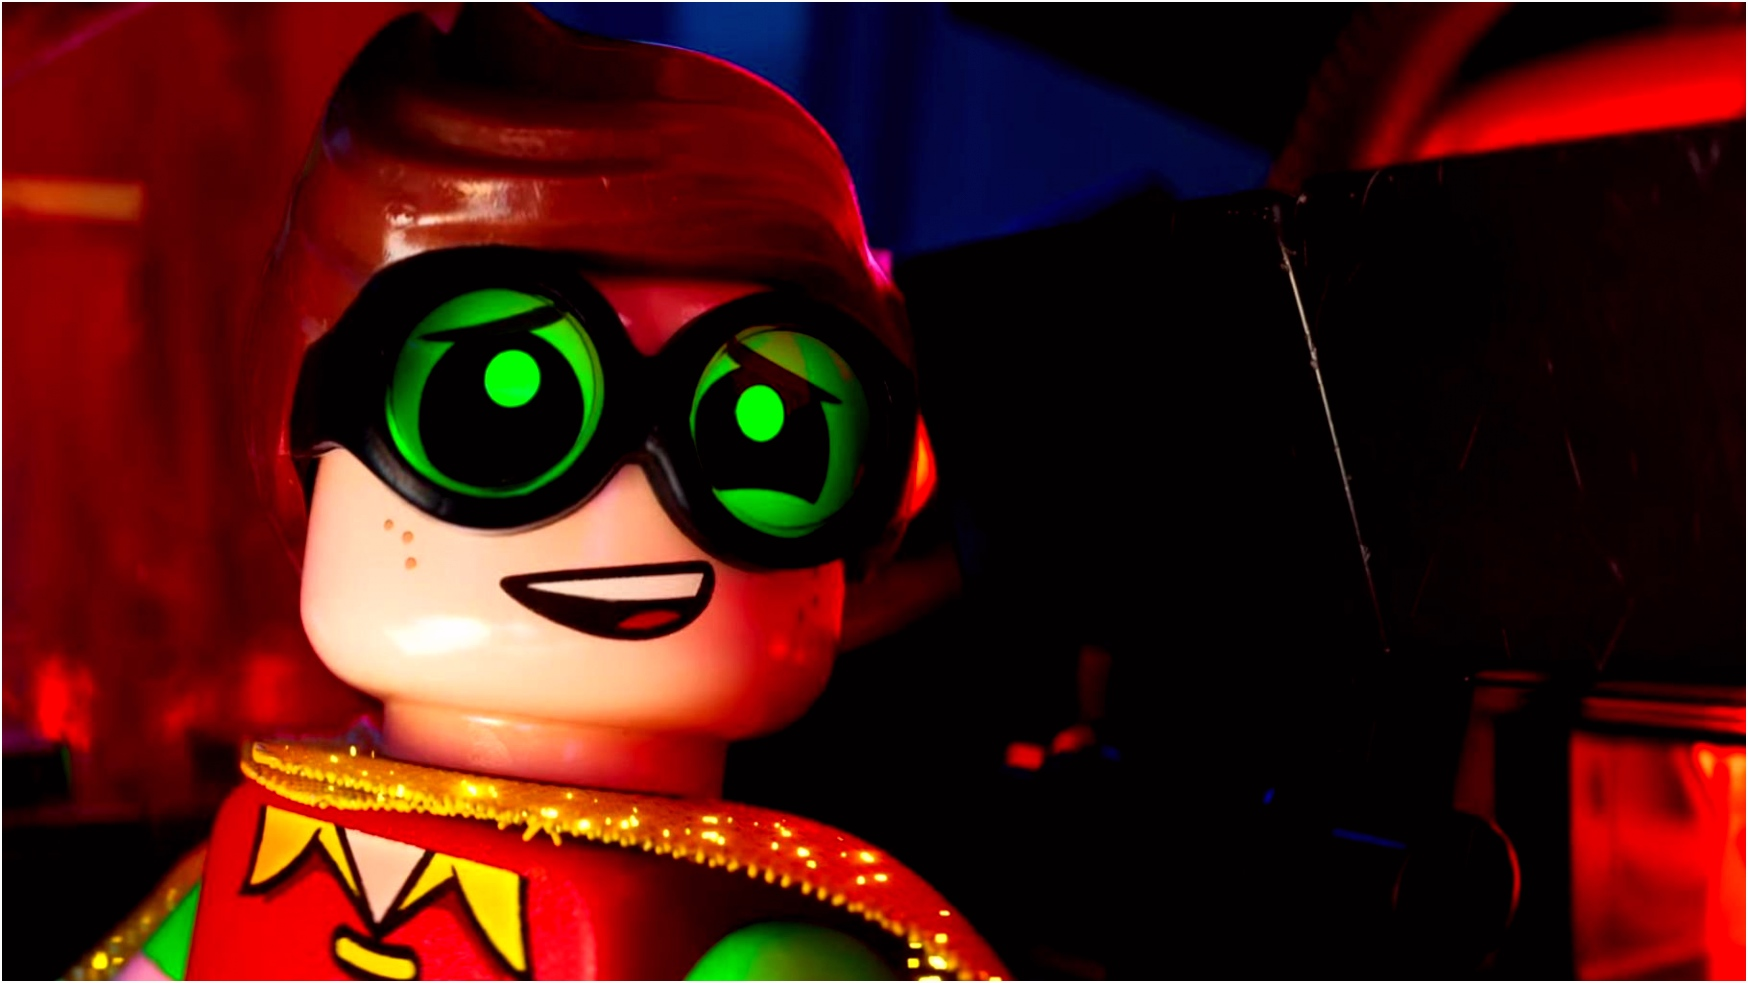 LEGO Batman Movie ic Con trailer introduces Robin and the Joker